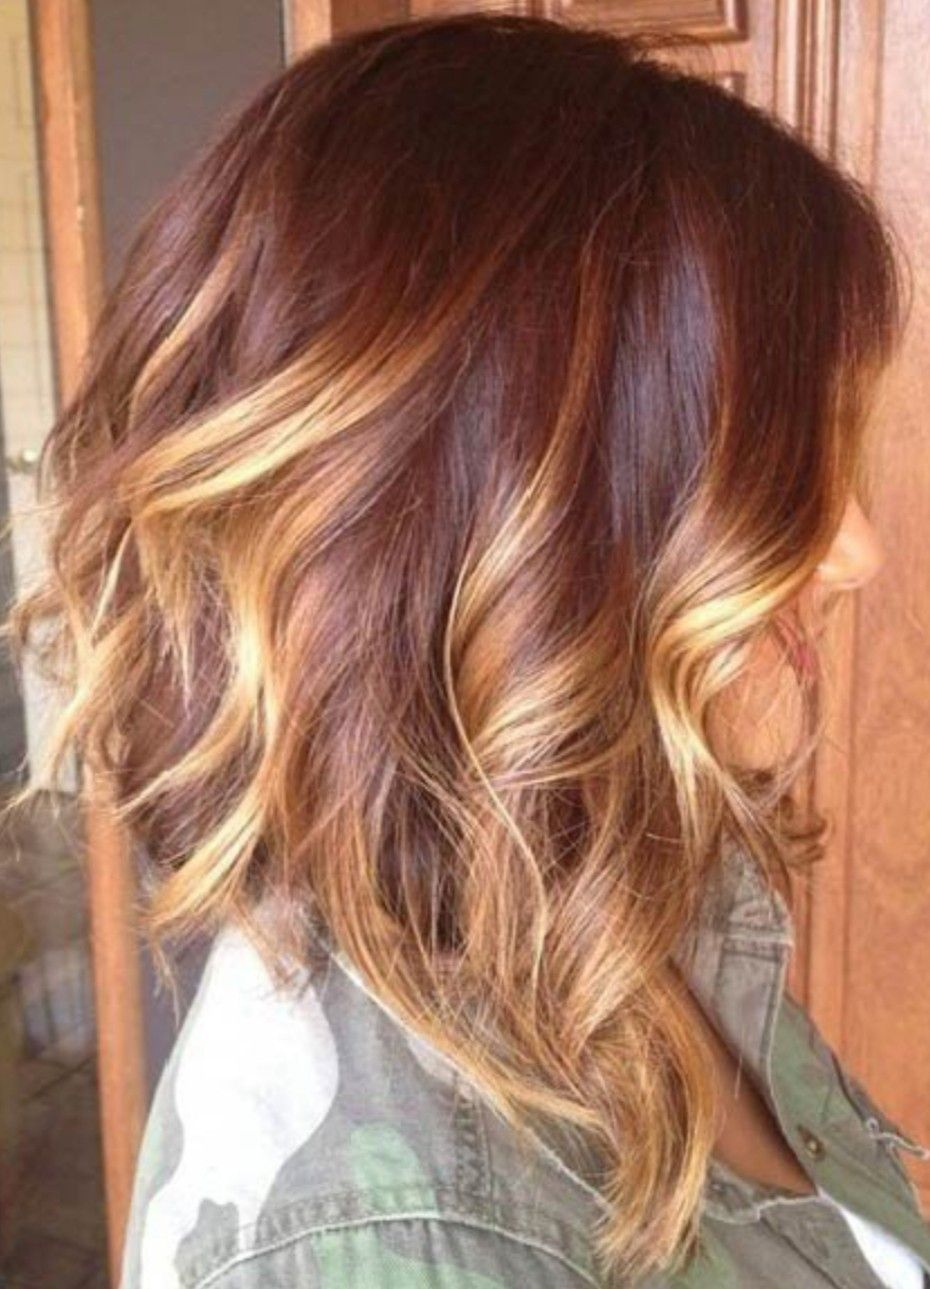 Pin by rain on hairstyles pinterest wavy hair hair and curly